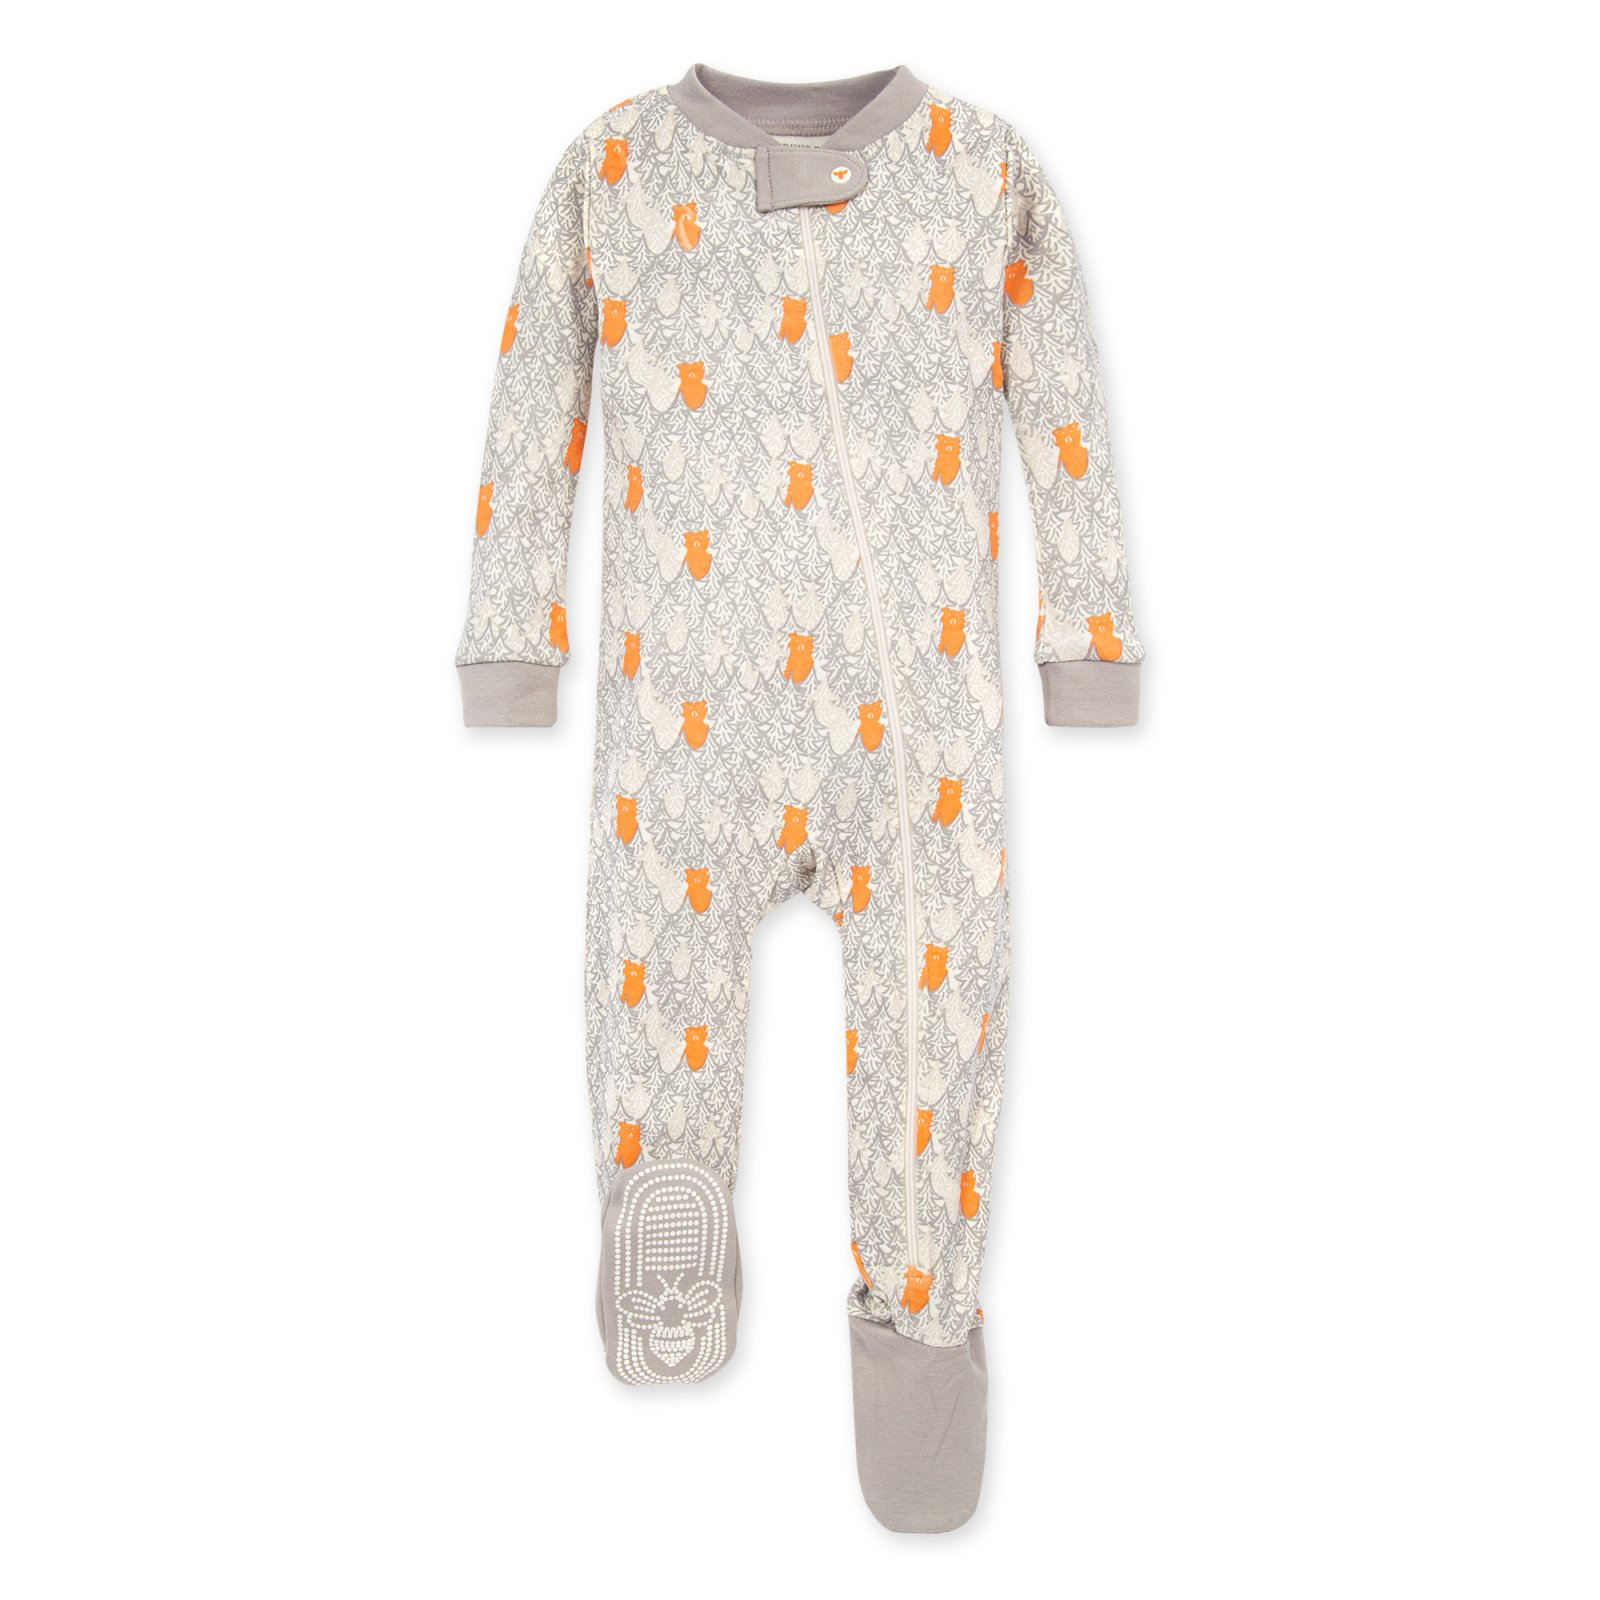 Burt's Bees LY27201 Bears In the Forest Organic Footie